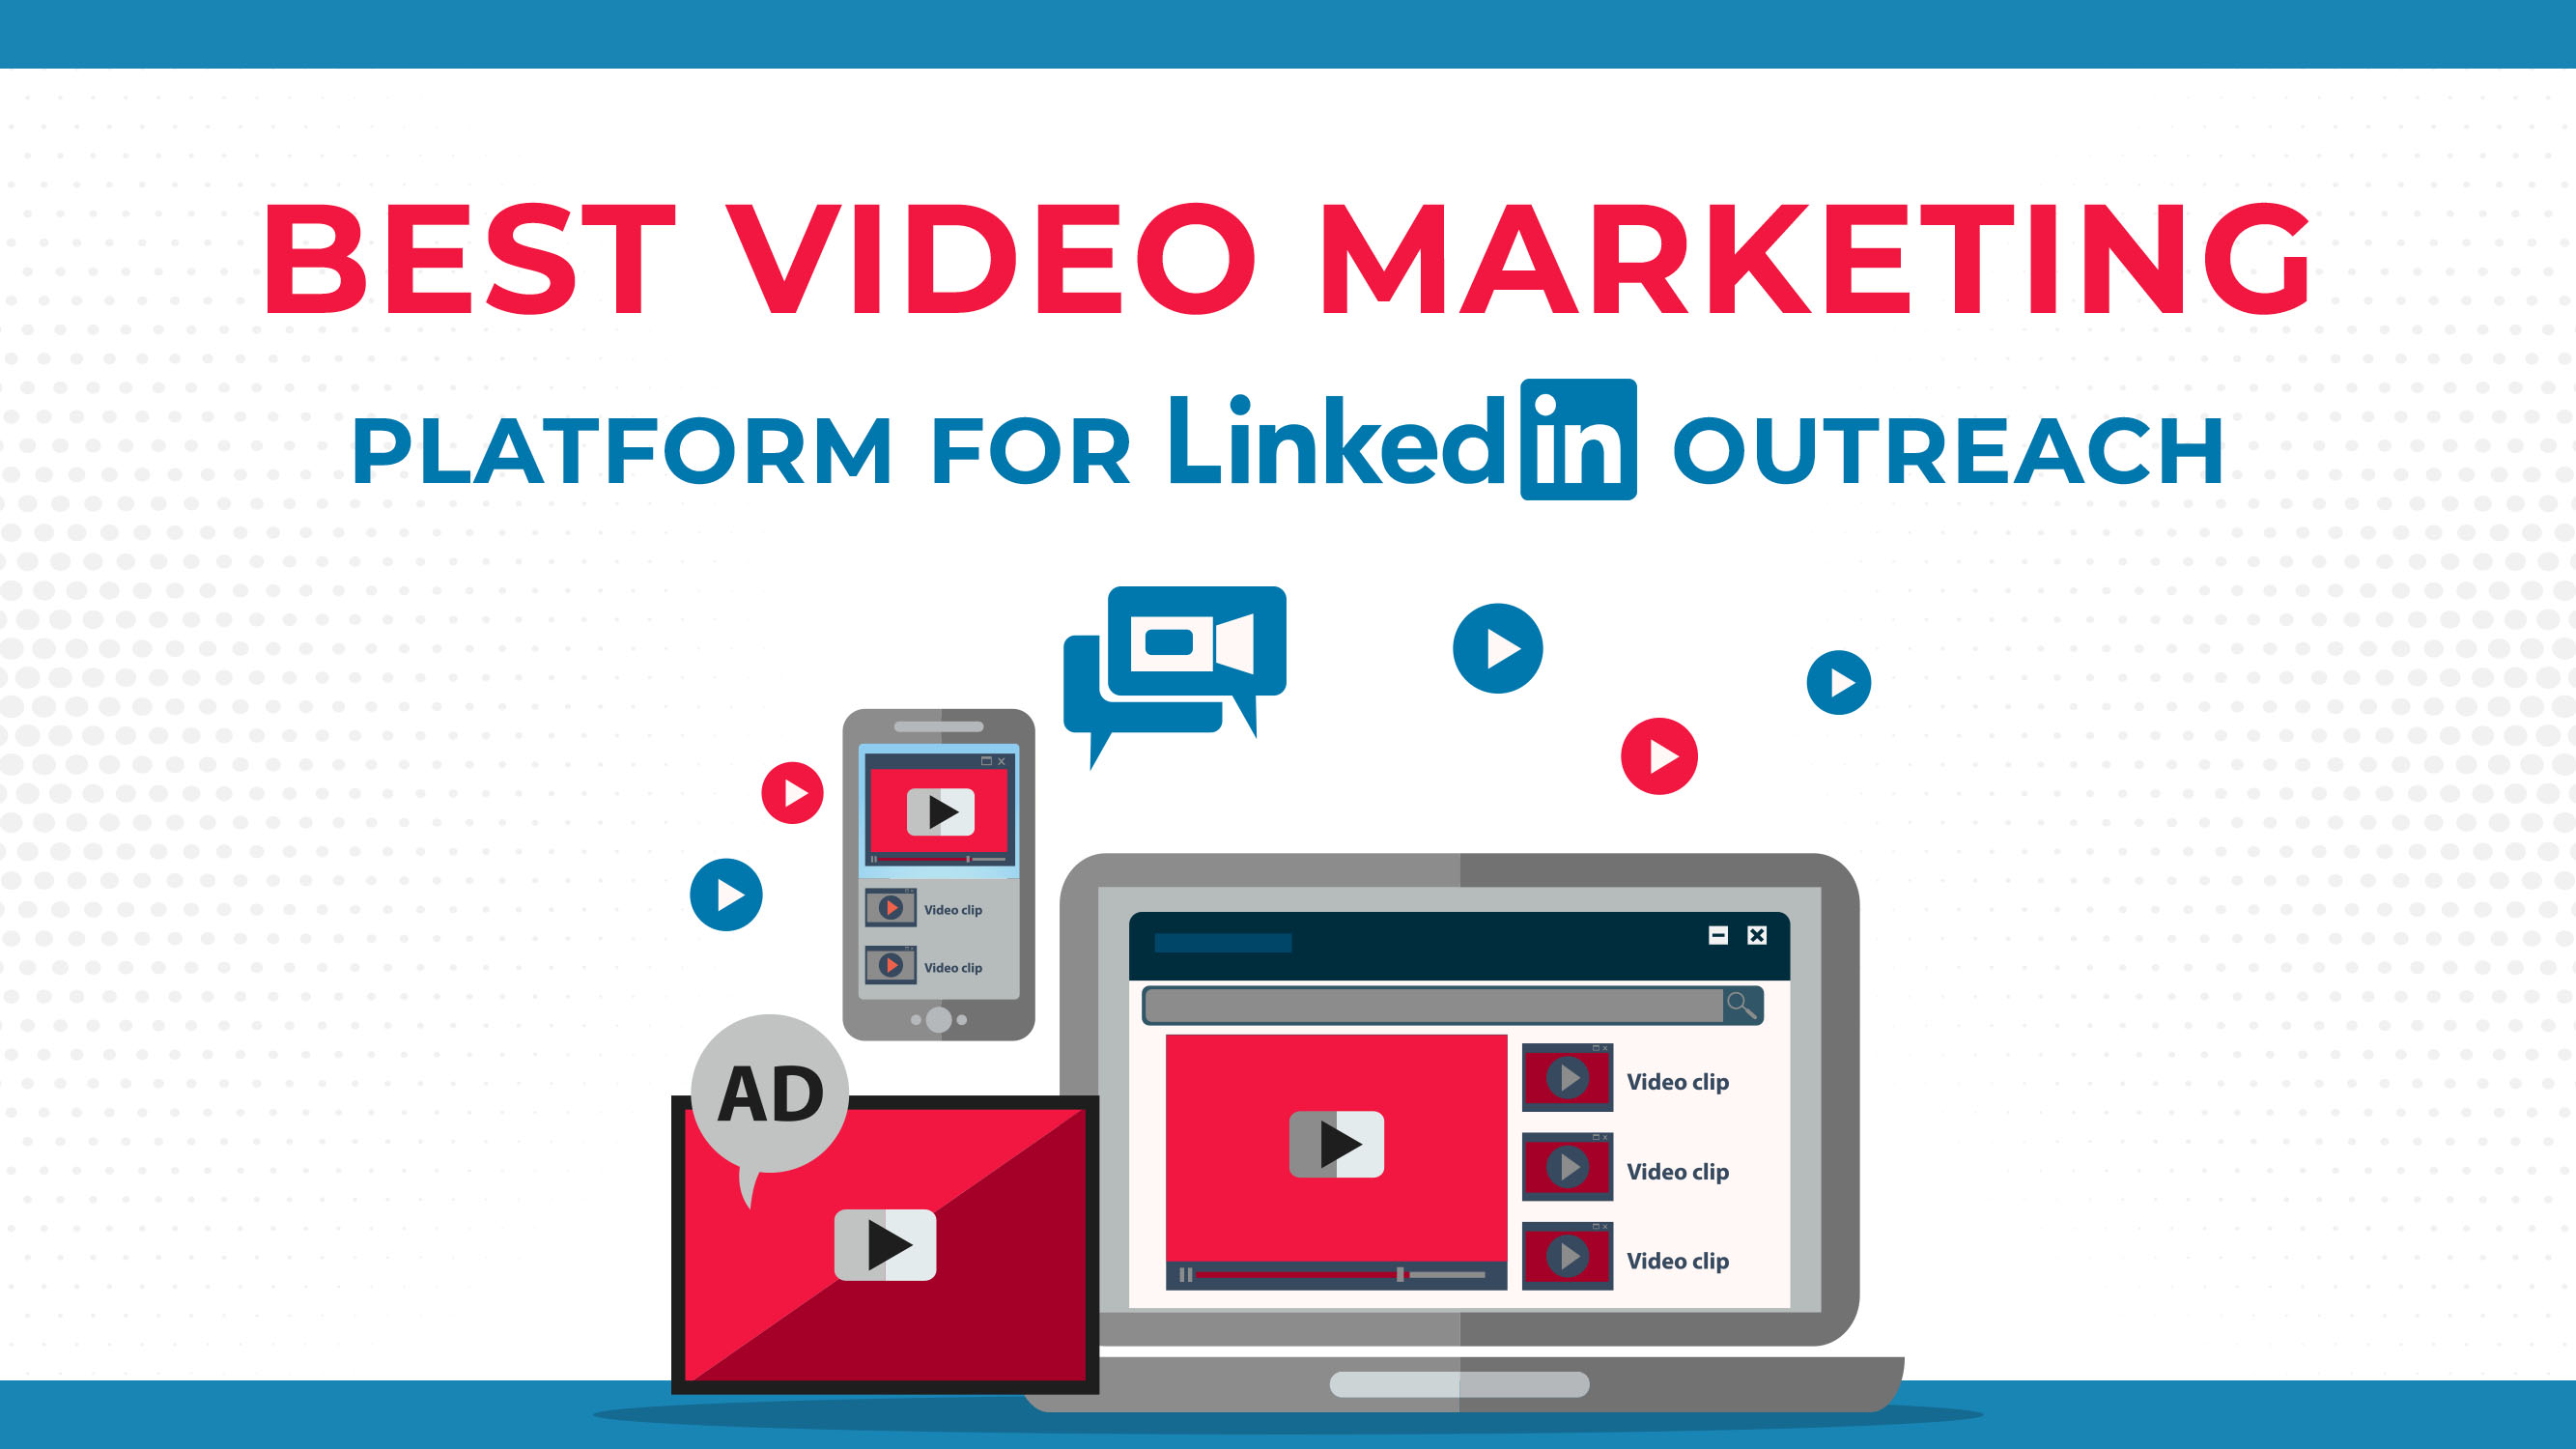 Beste Video-Marketing-Plattform für LinkedIn Outreach